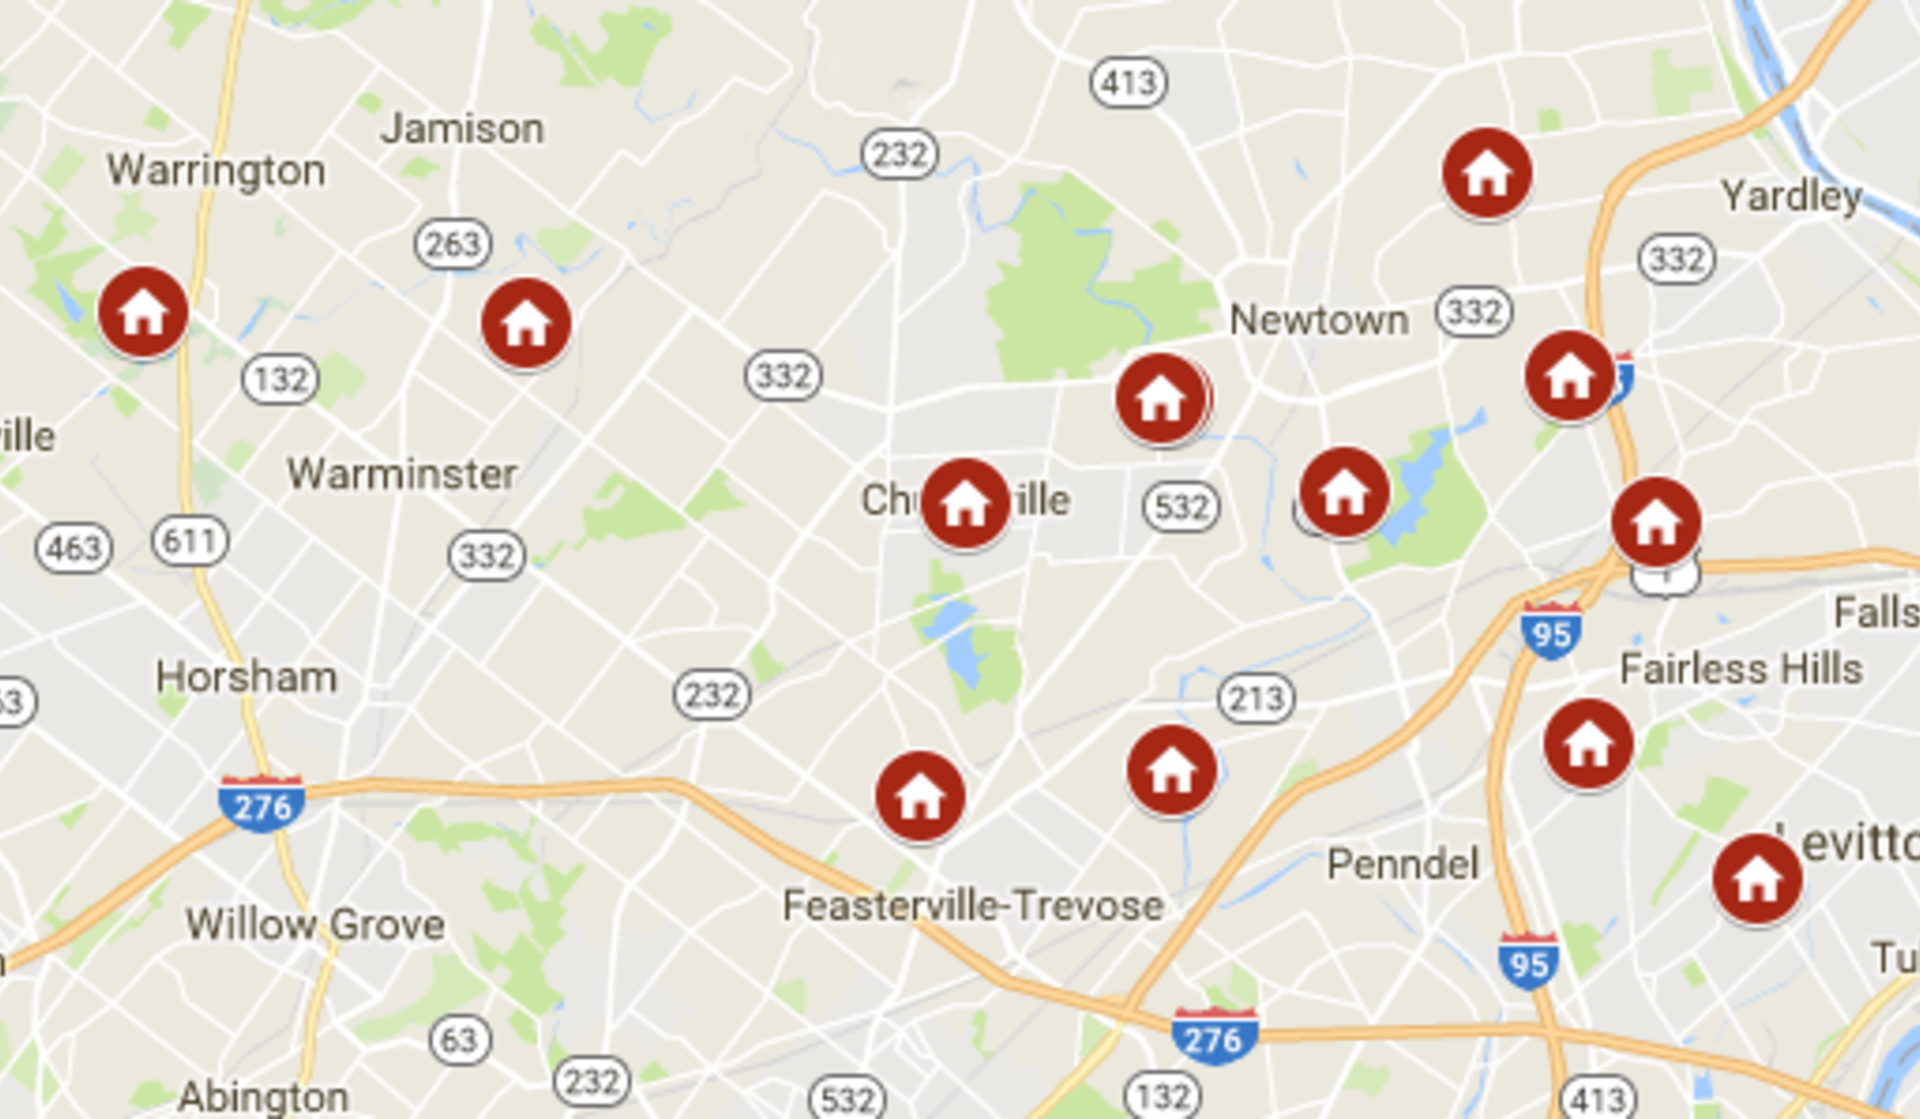 Keller Williams Newtown's open houses November 11th – November 12th